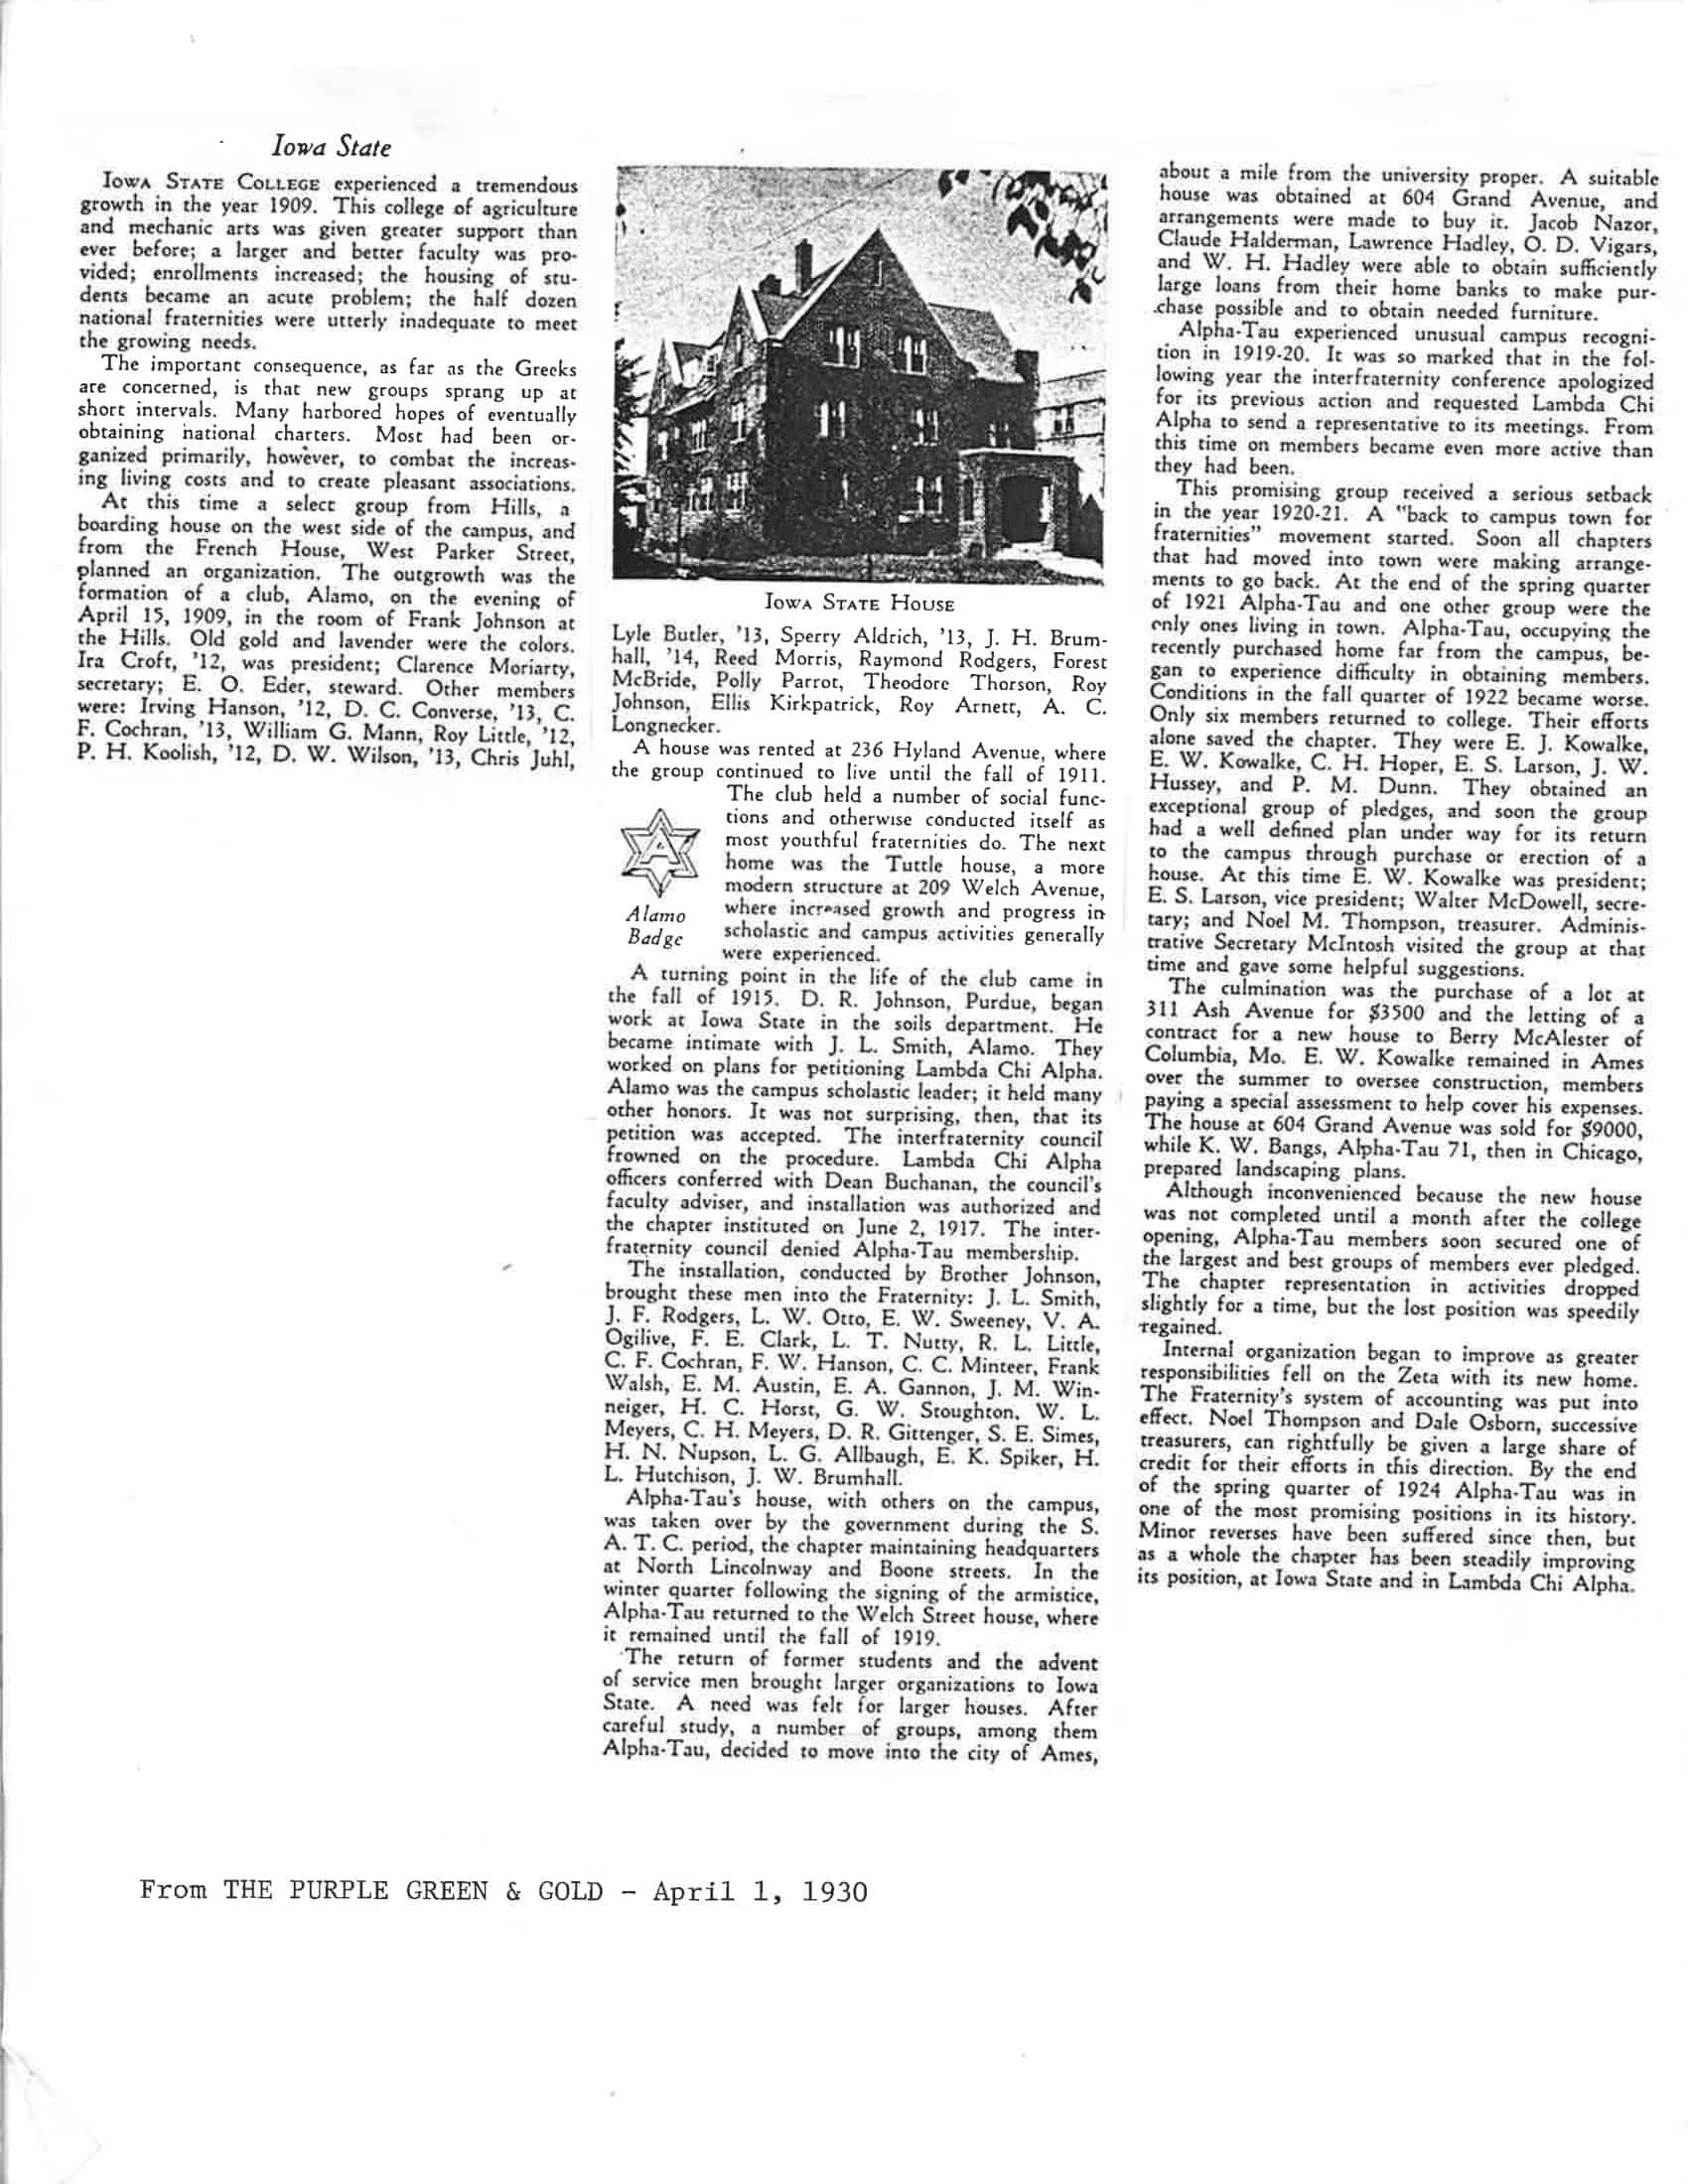 1930 Purple, Green and Gold Newsletter